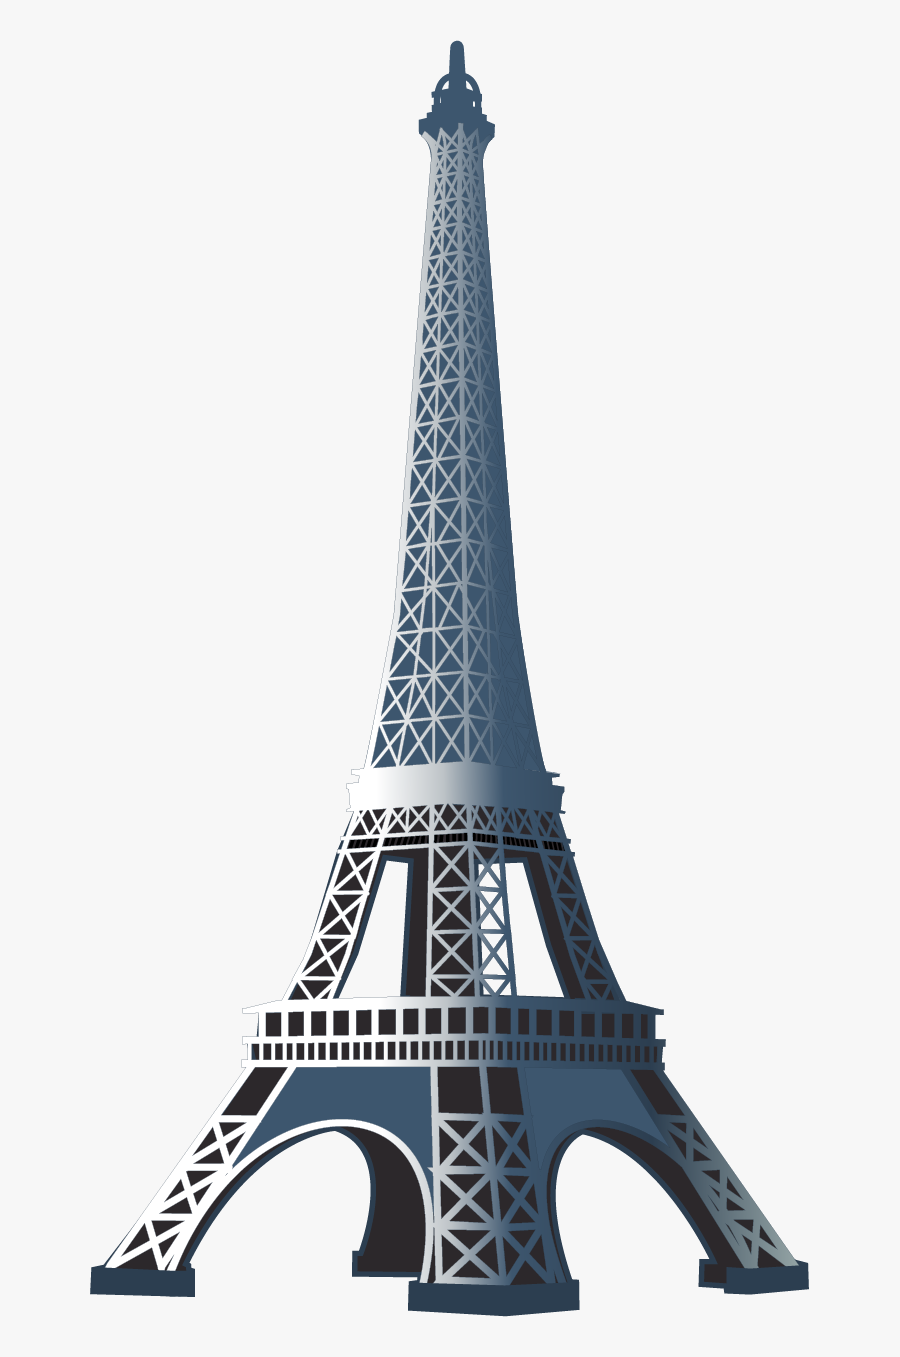 Png Images Free Download - Eiffel Tower Paris Png, Transparent Clipart